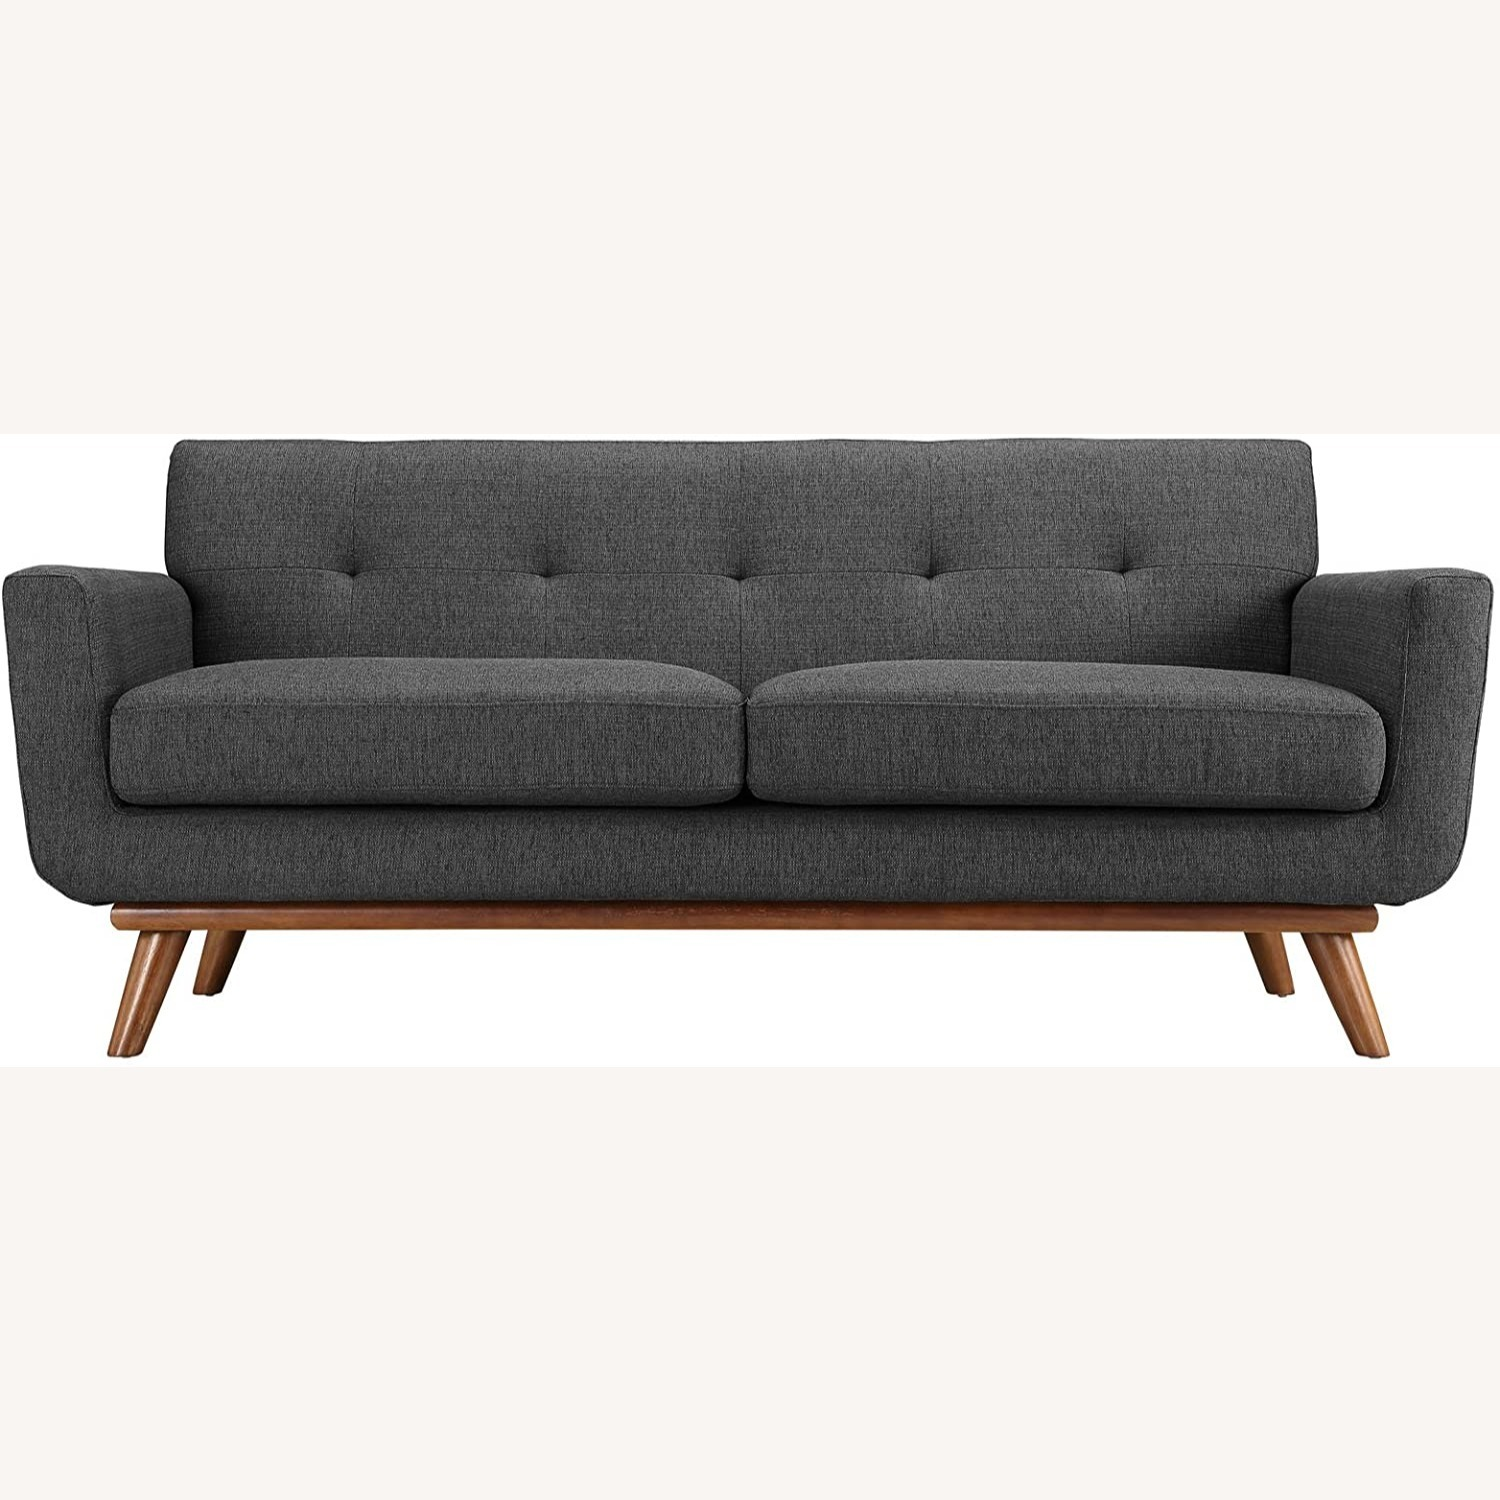 Modern Loveseat In Gray Fabric Upholstery - image-1